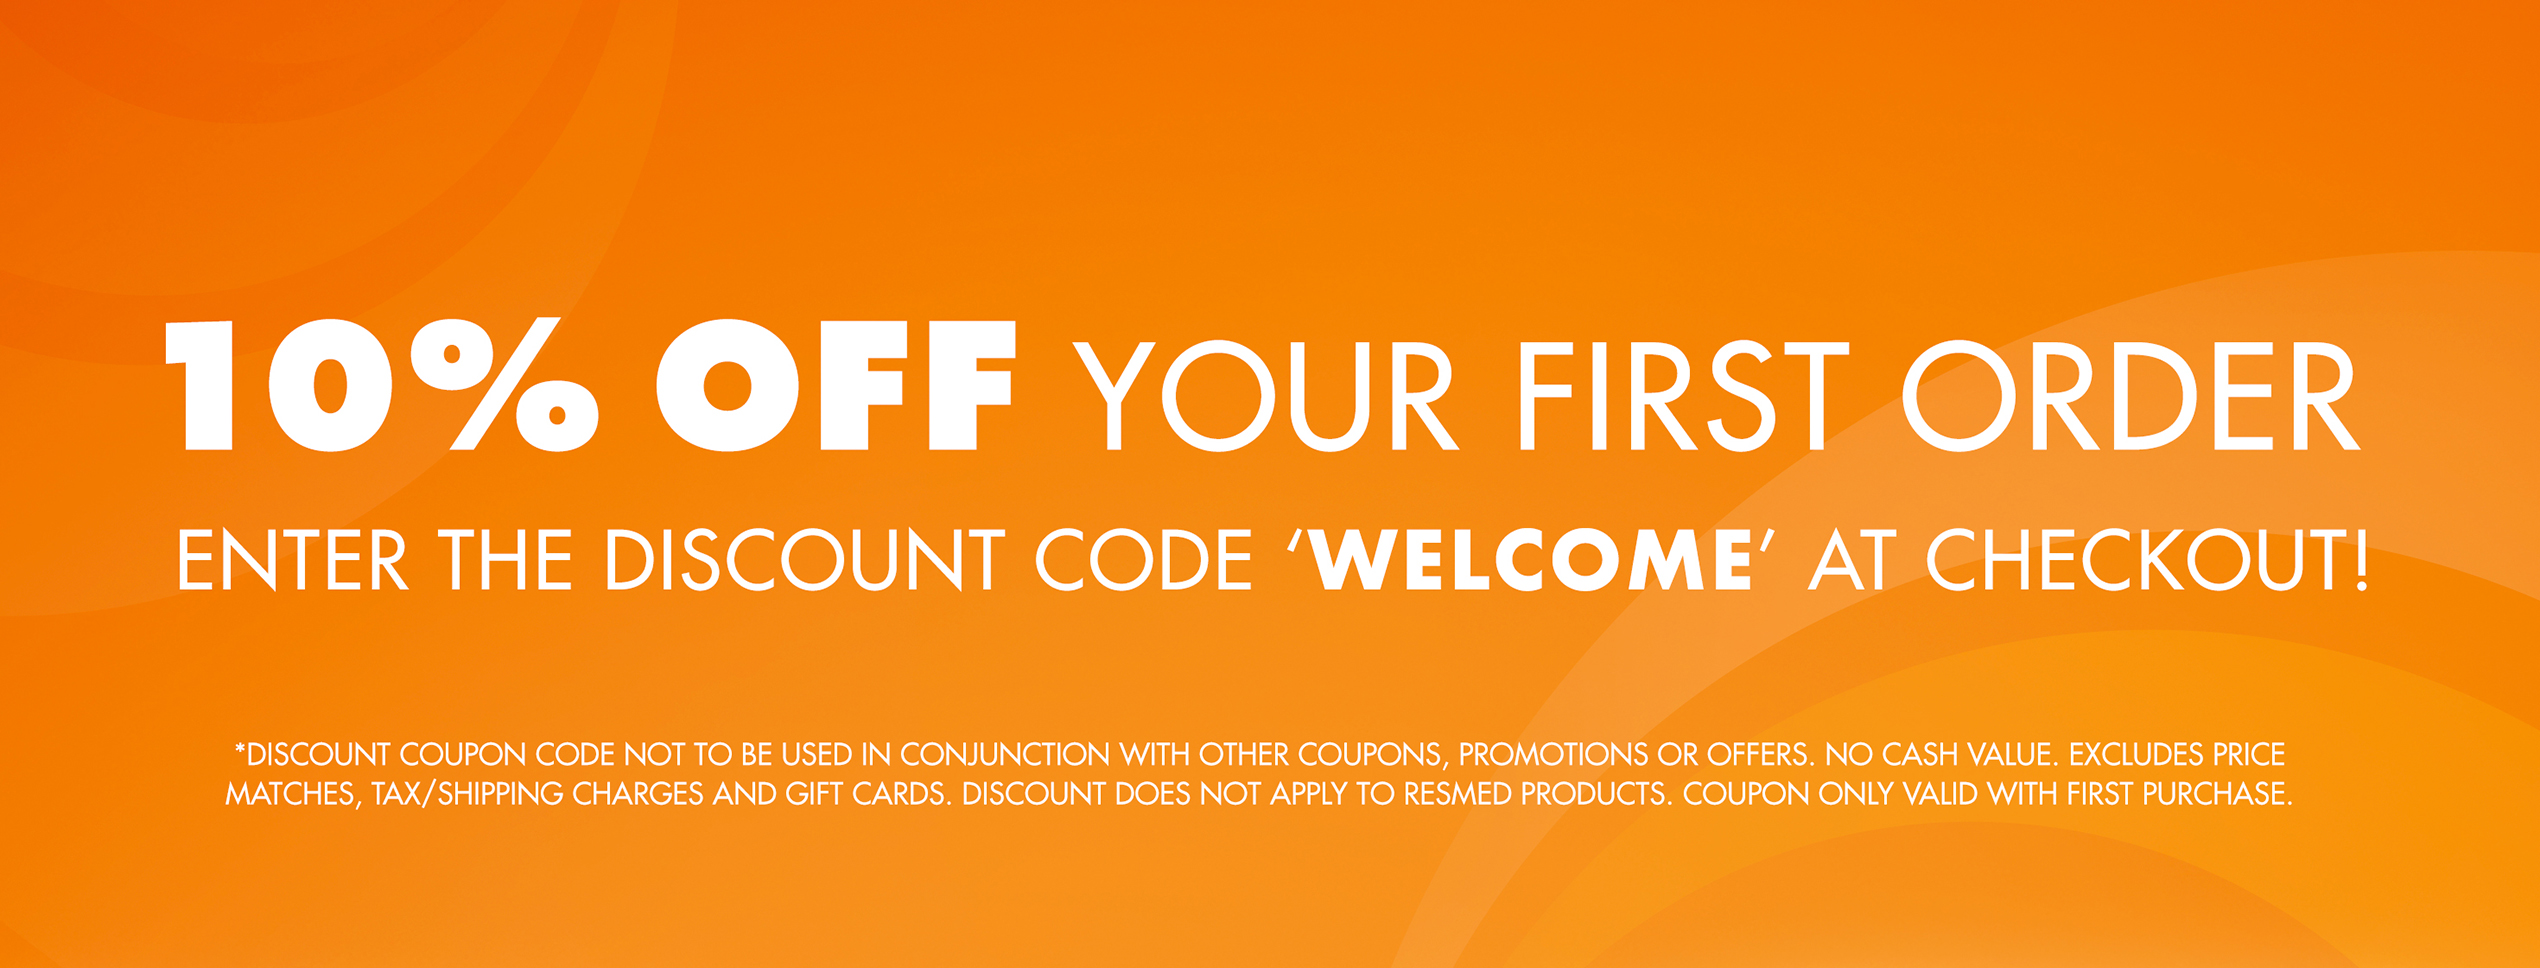 GoldCoastMedical.com Coupon